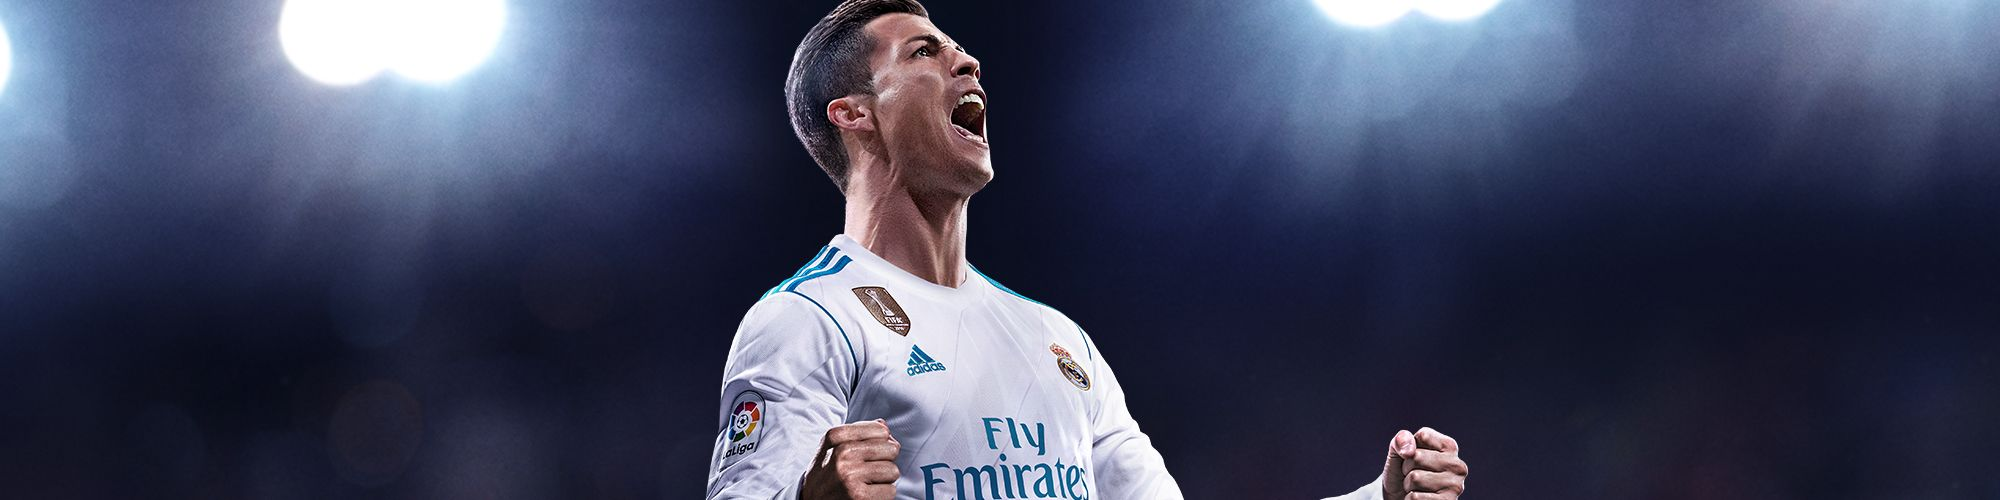 FIFA 18 technical specifications for PCs